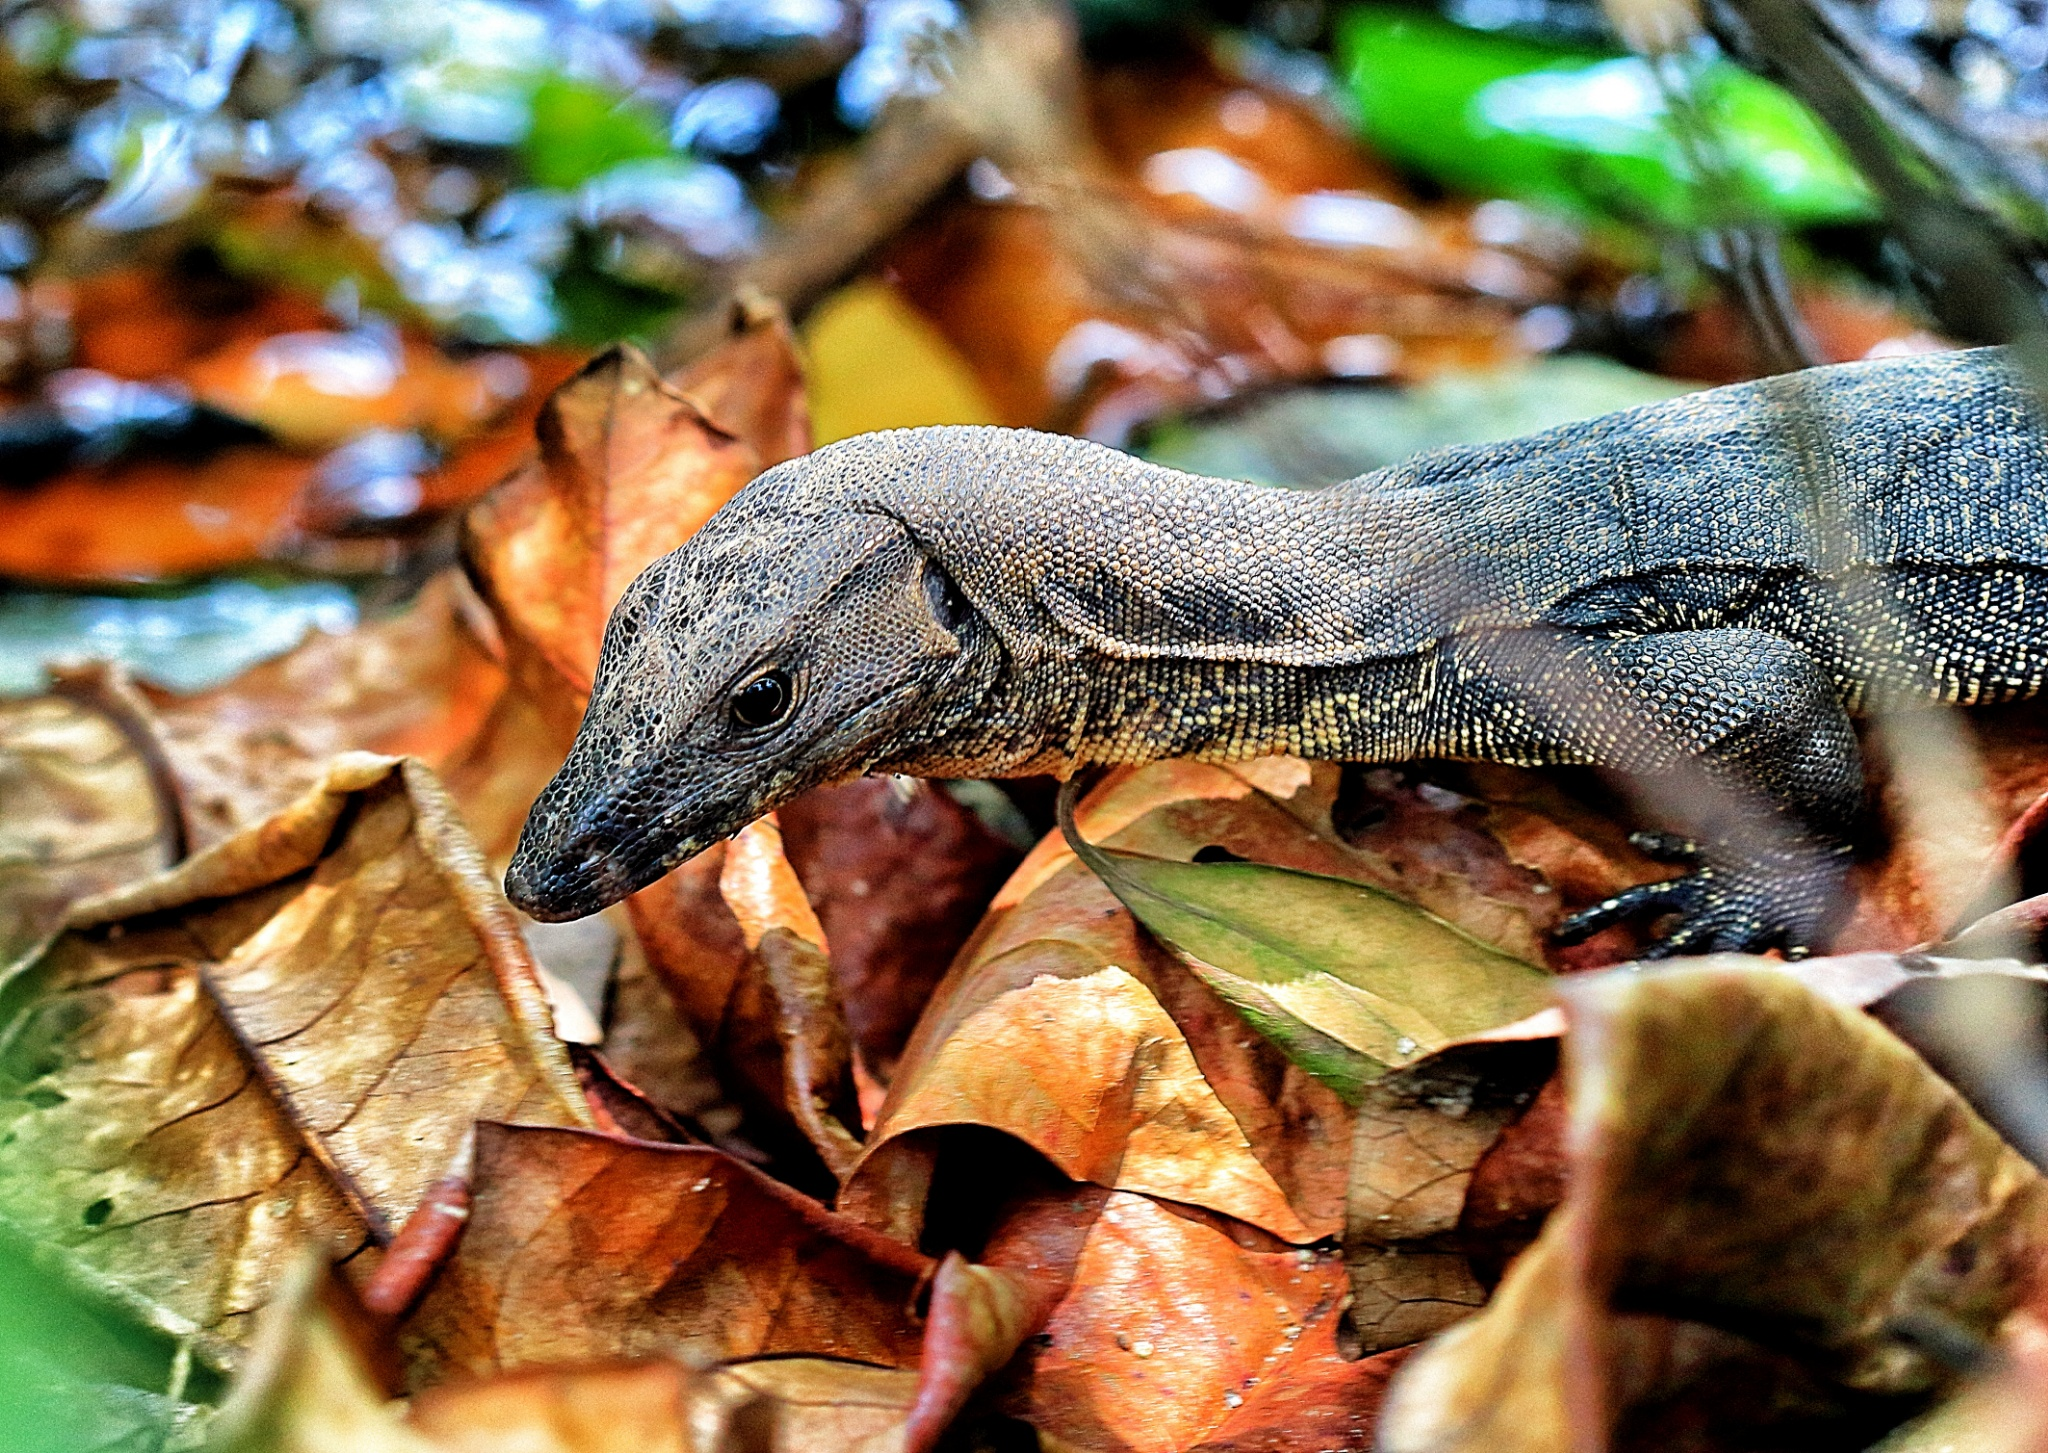 The Water Monitor Lizards of Sungei Buloh